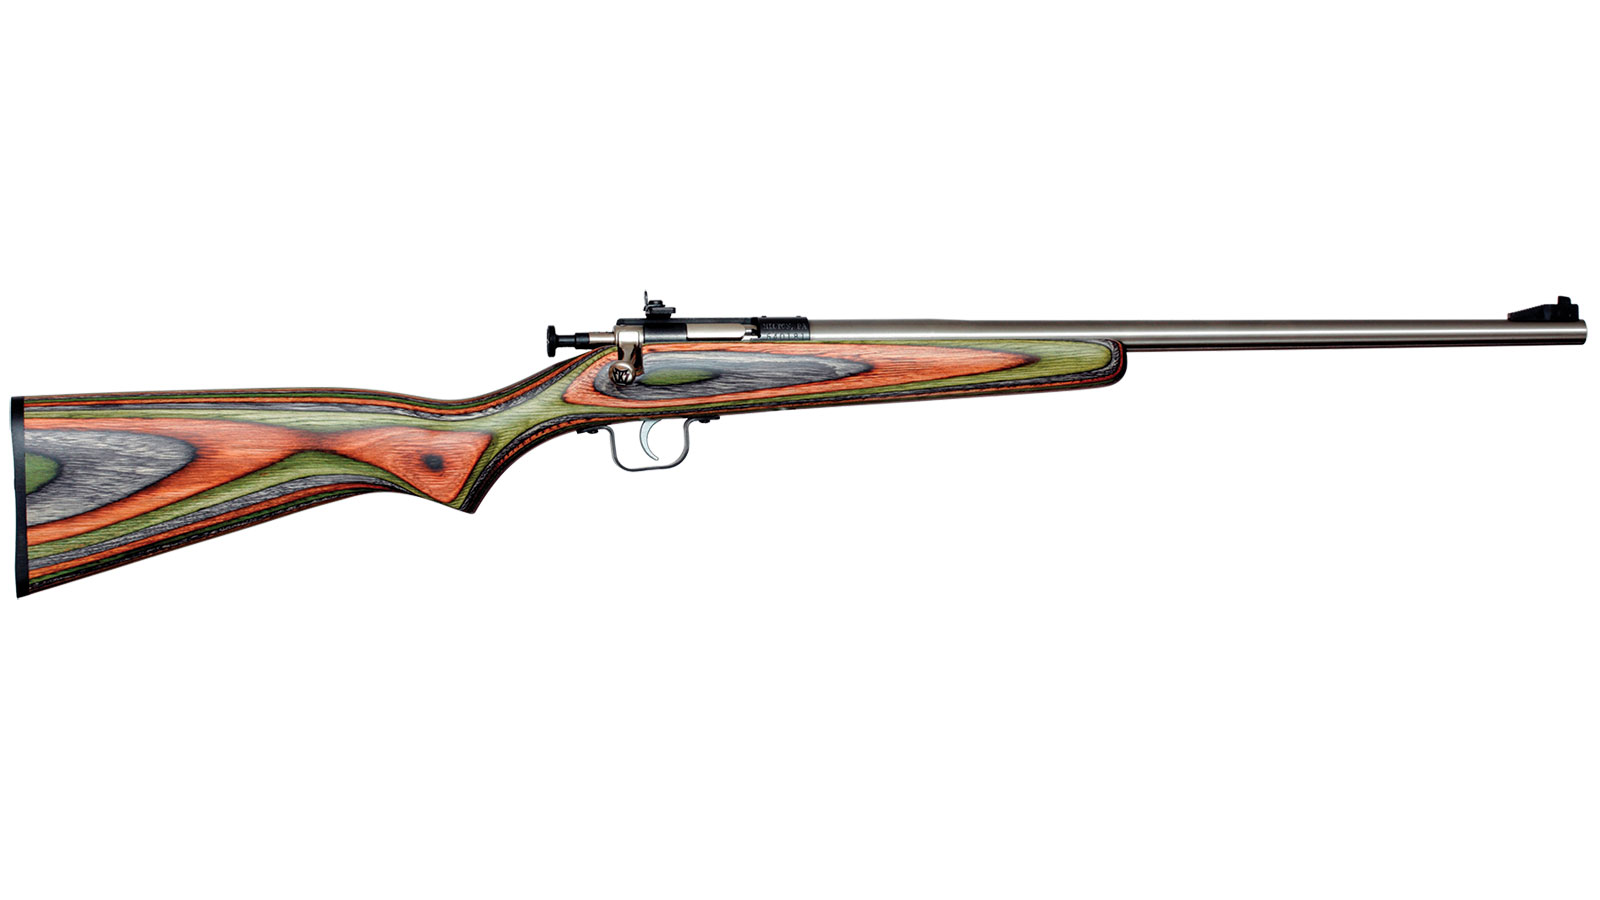 Crickett KSA3252 Single Shot Laminate Bolt 22 Long Rifle (LR) 16.125 1 Laminate Camouflage Stk Stainless Steel in.